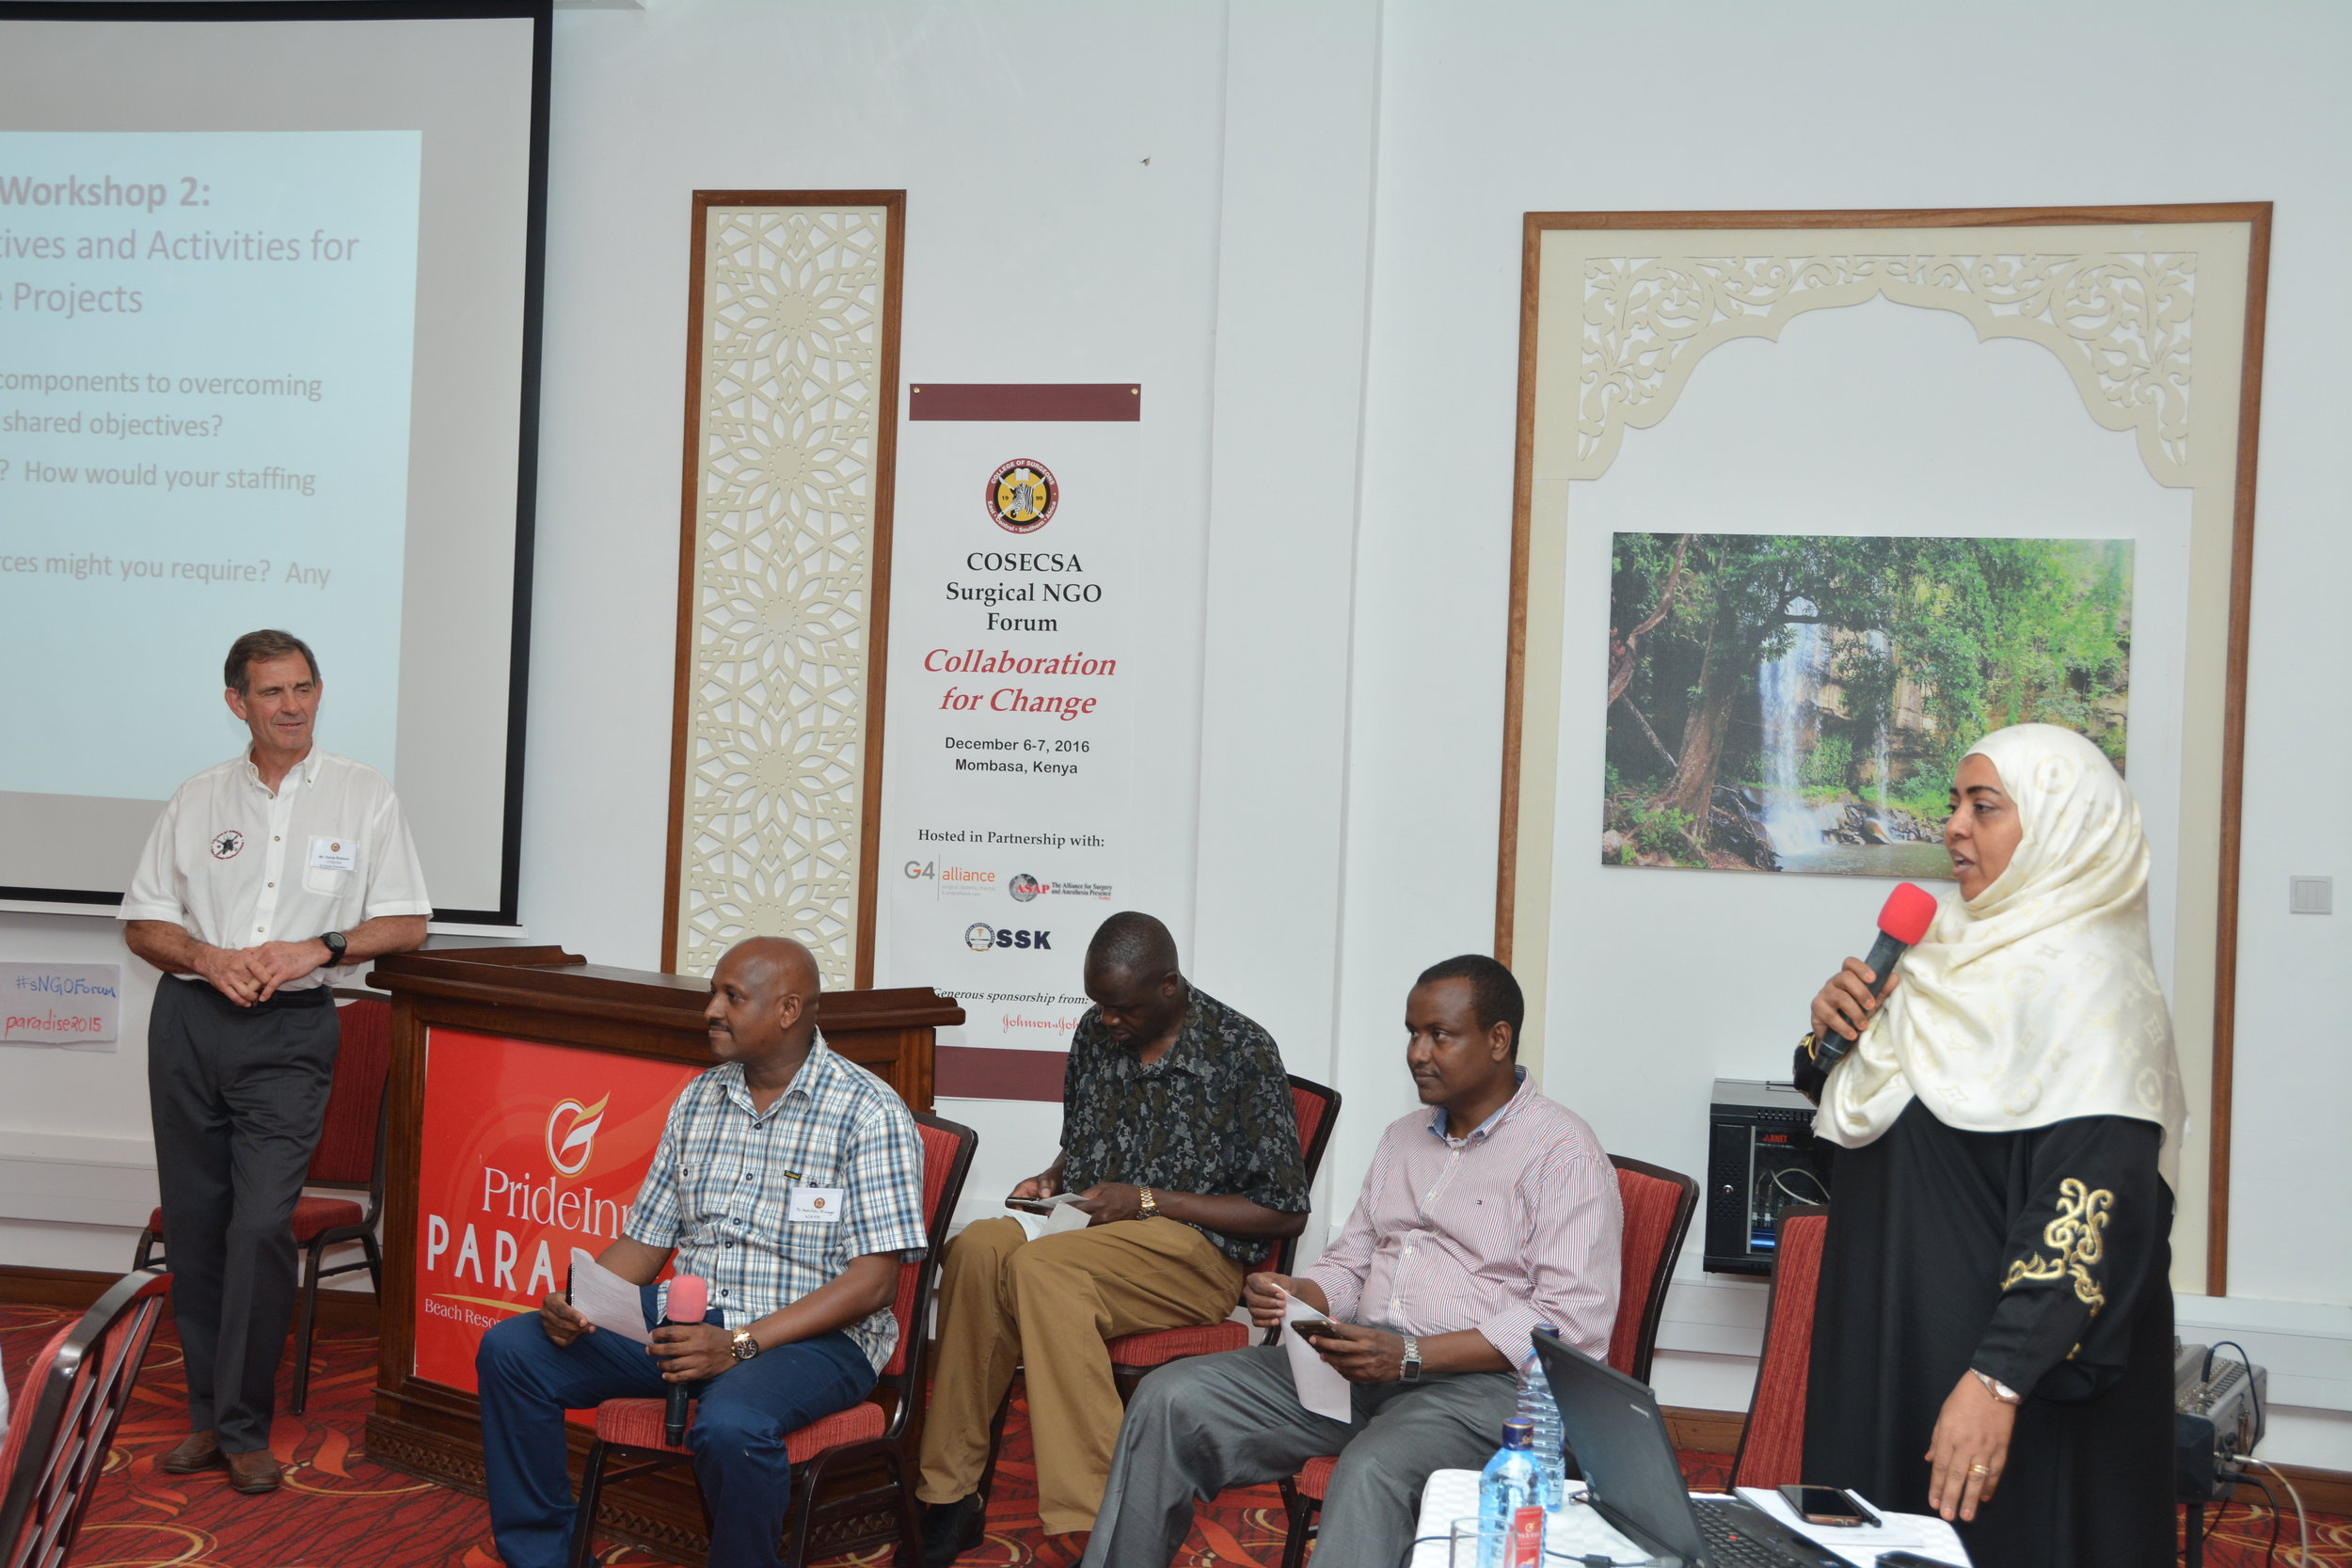 ( From left to right) Dr. Khadija Shikely,Chief Officer of Health, Mombasa County;Hon. Dr. Abdi Ibrahim,Chief Executive Officer of Health, Mombassa County;Dr. Kristeen O. Awori,President, Surgical Society of Kenya;Dr. Abdullahi Kimogol,WAHA International;Mr. Denis Robson,COSECSA Council and Board of Directors, Fistula Foundation    COSECSA sNGO Forum, Mombasa, Kenya, 2016; Photography by: KEN